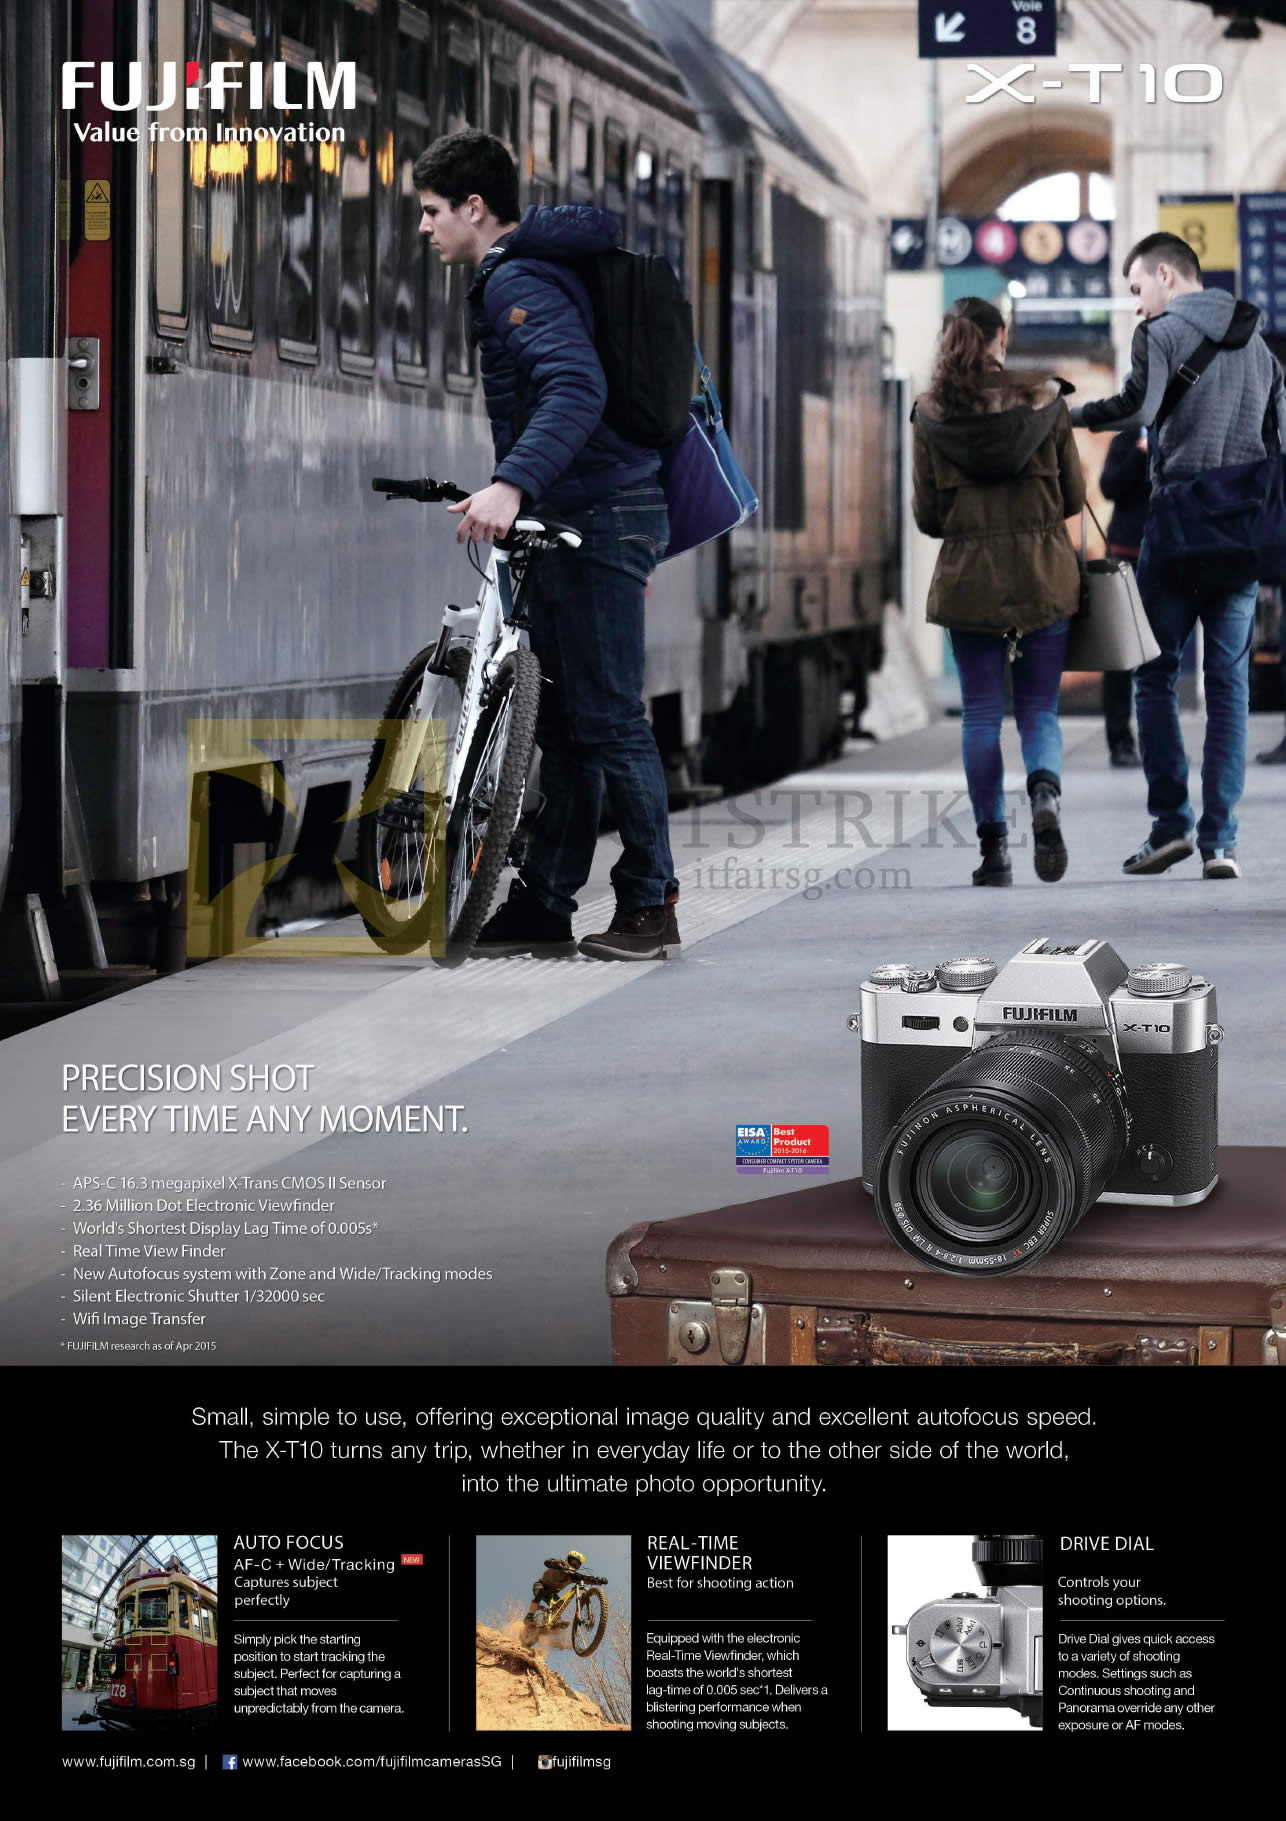 Fujifilm Digital Camera X-T10 Features